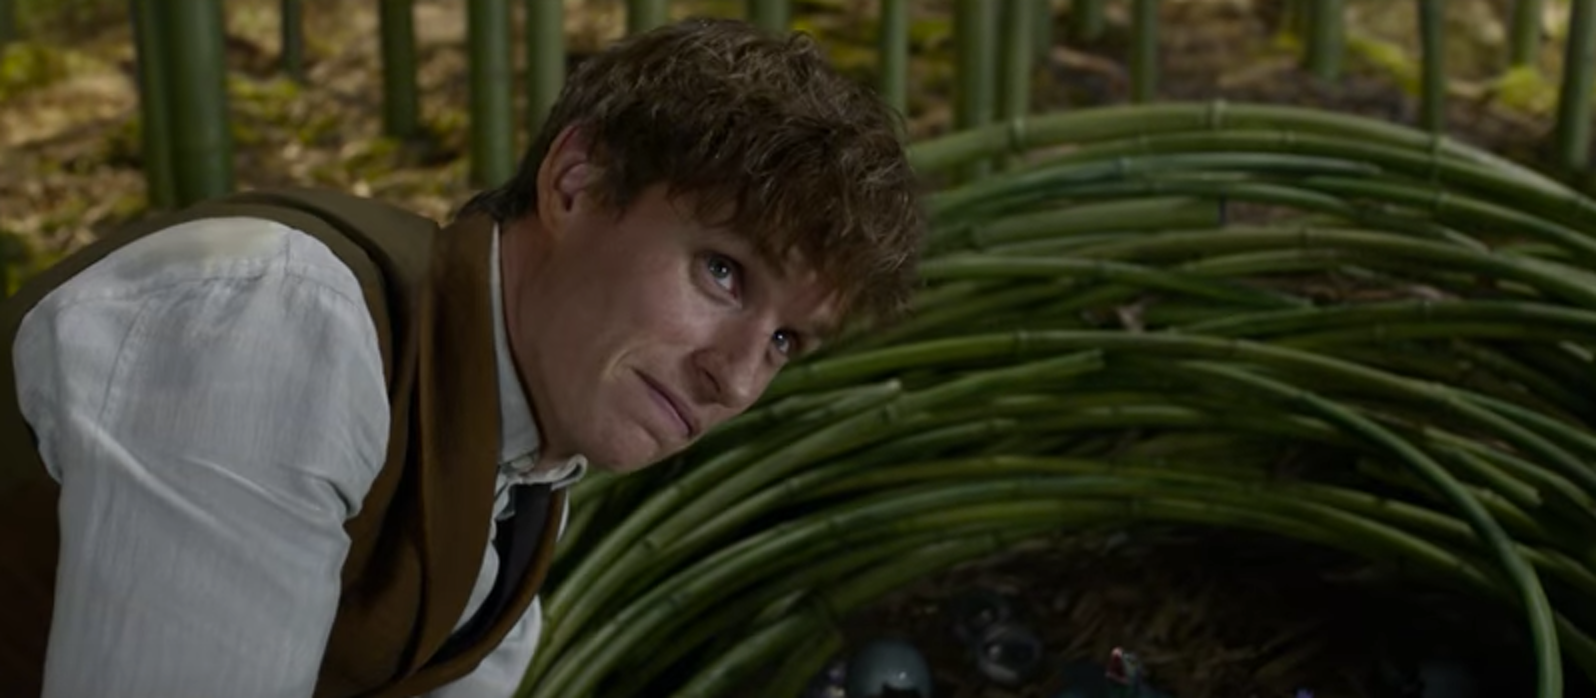 Are these Jobberknolls in 'Fantastic Beasts and Where to Find Them'?